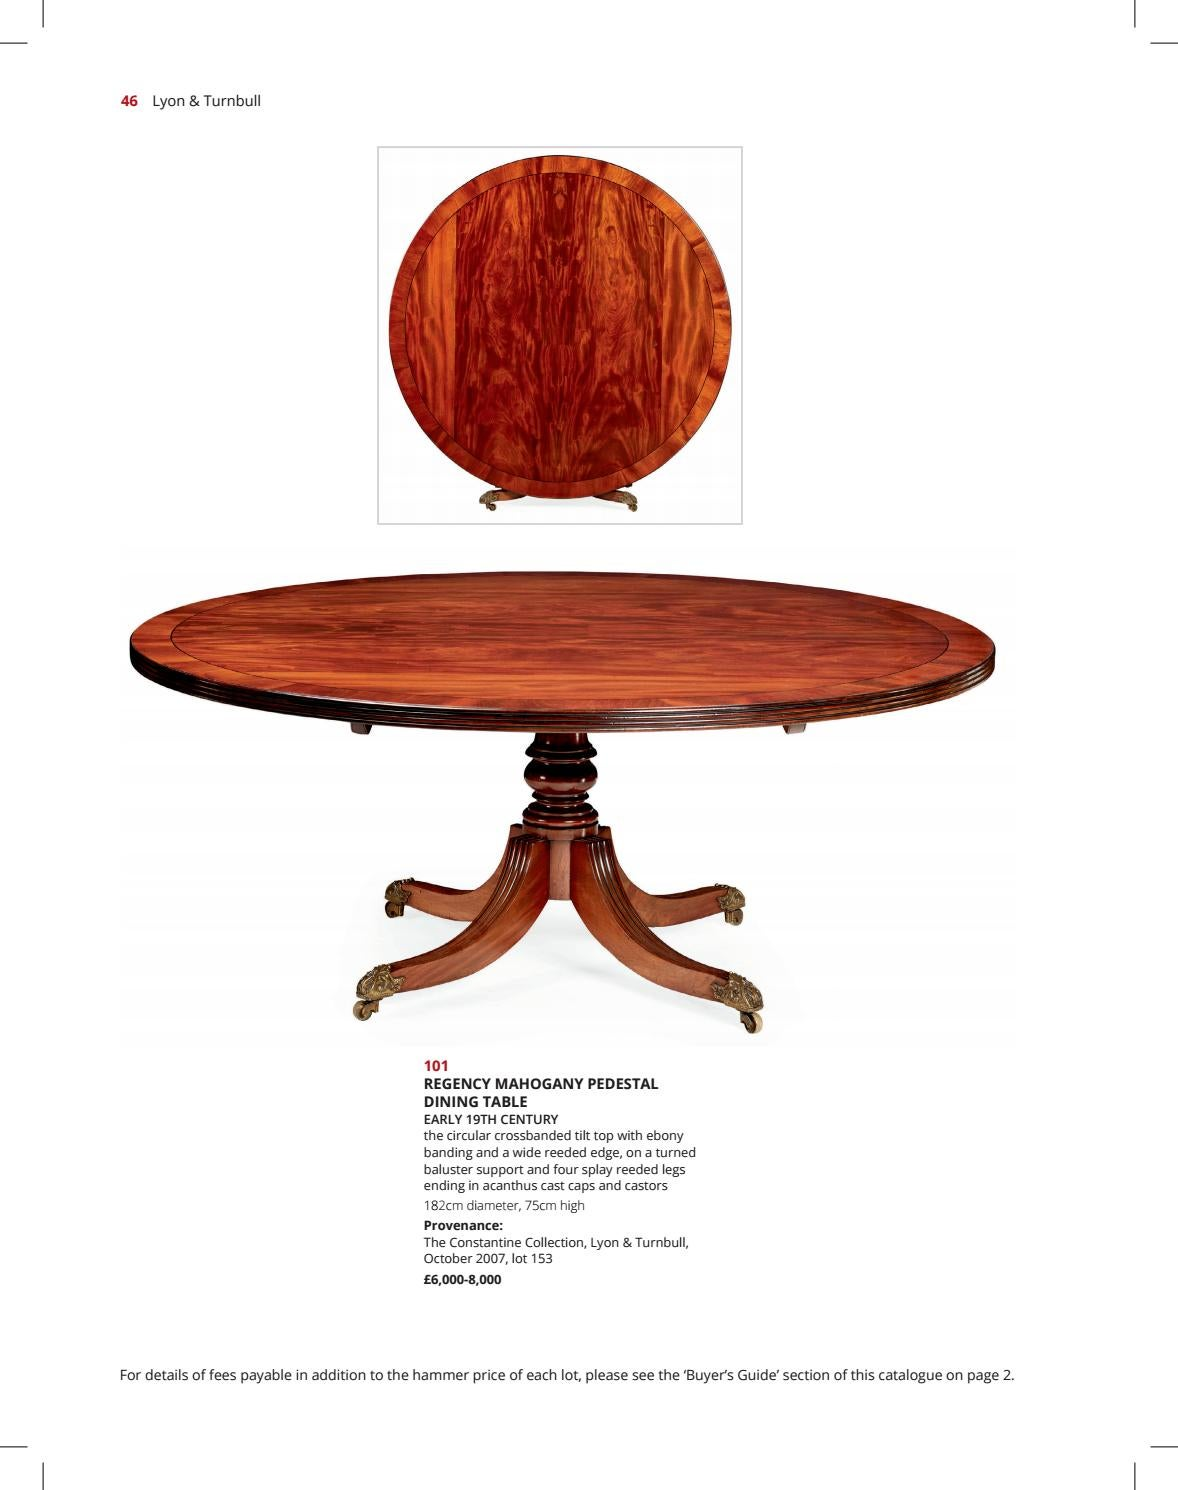 Fine Furniture Works Of Art 5th July 10am By Lyon Turnbull